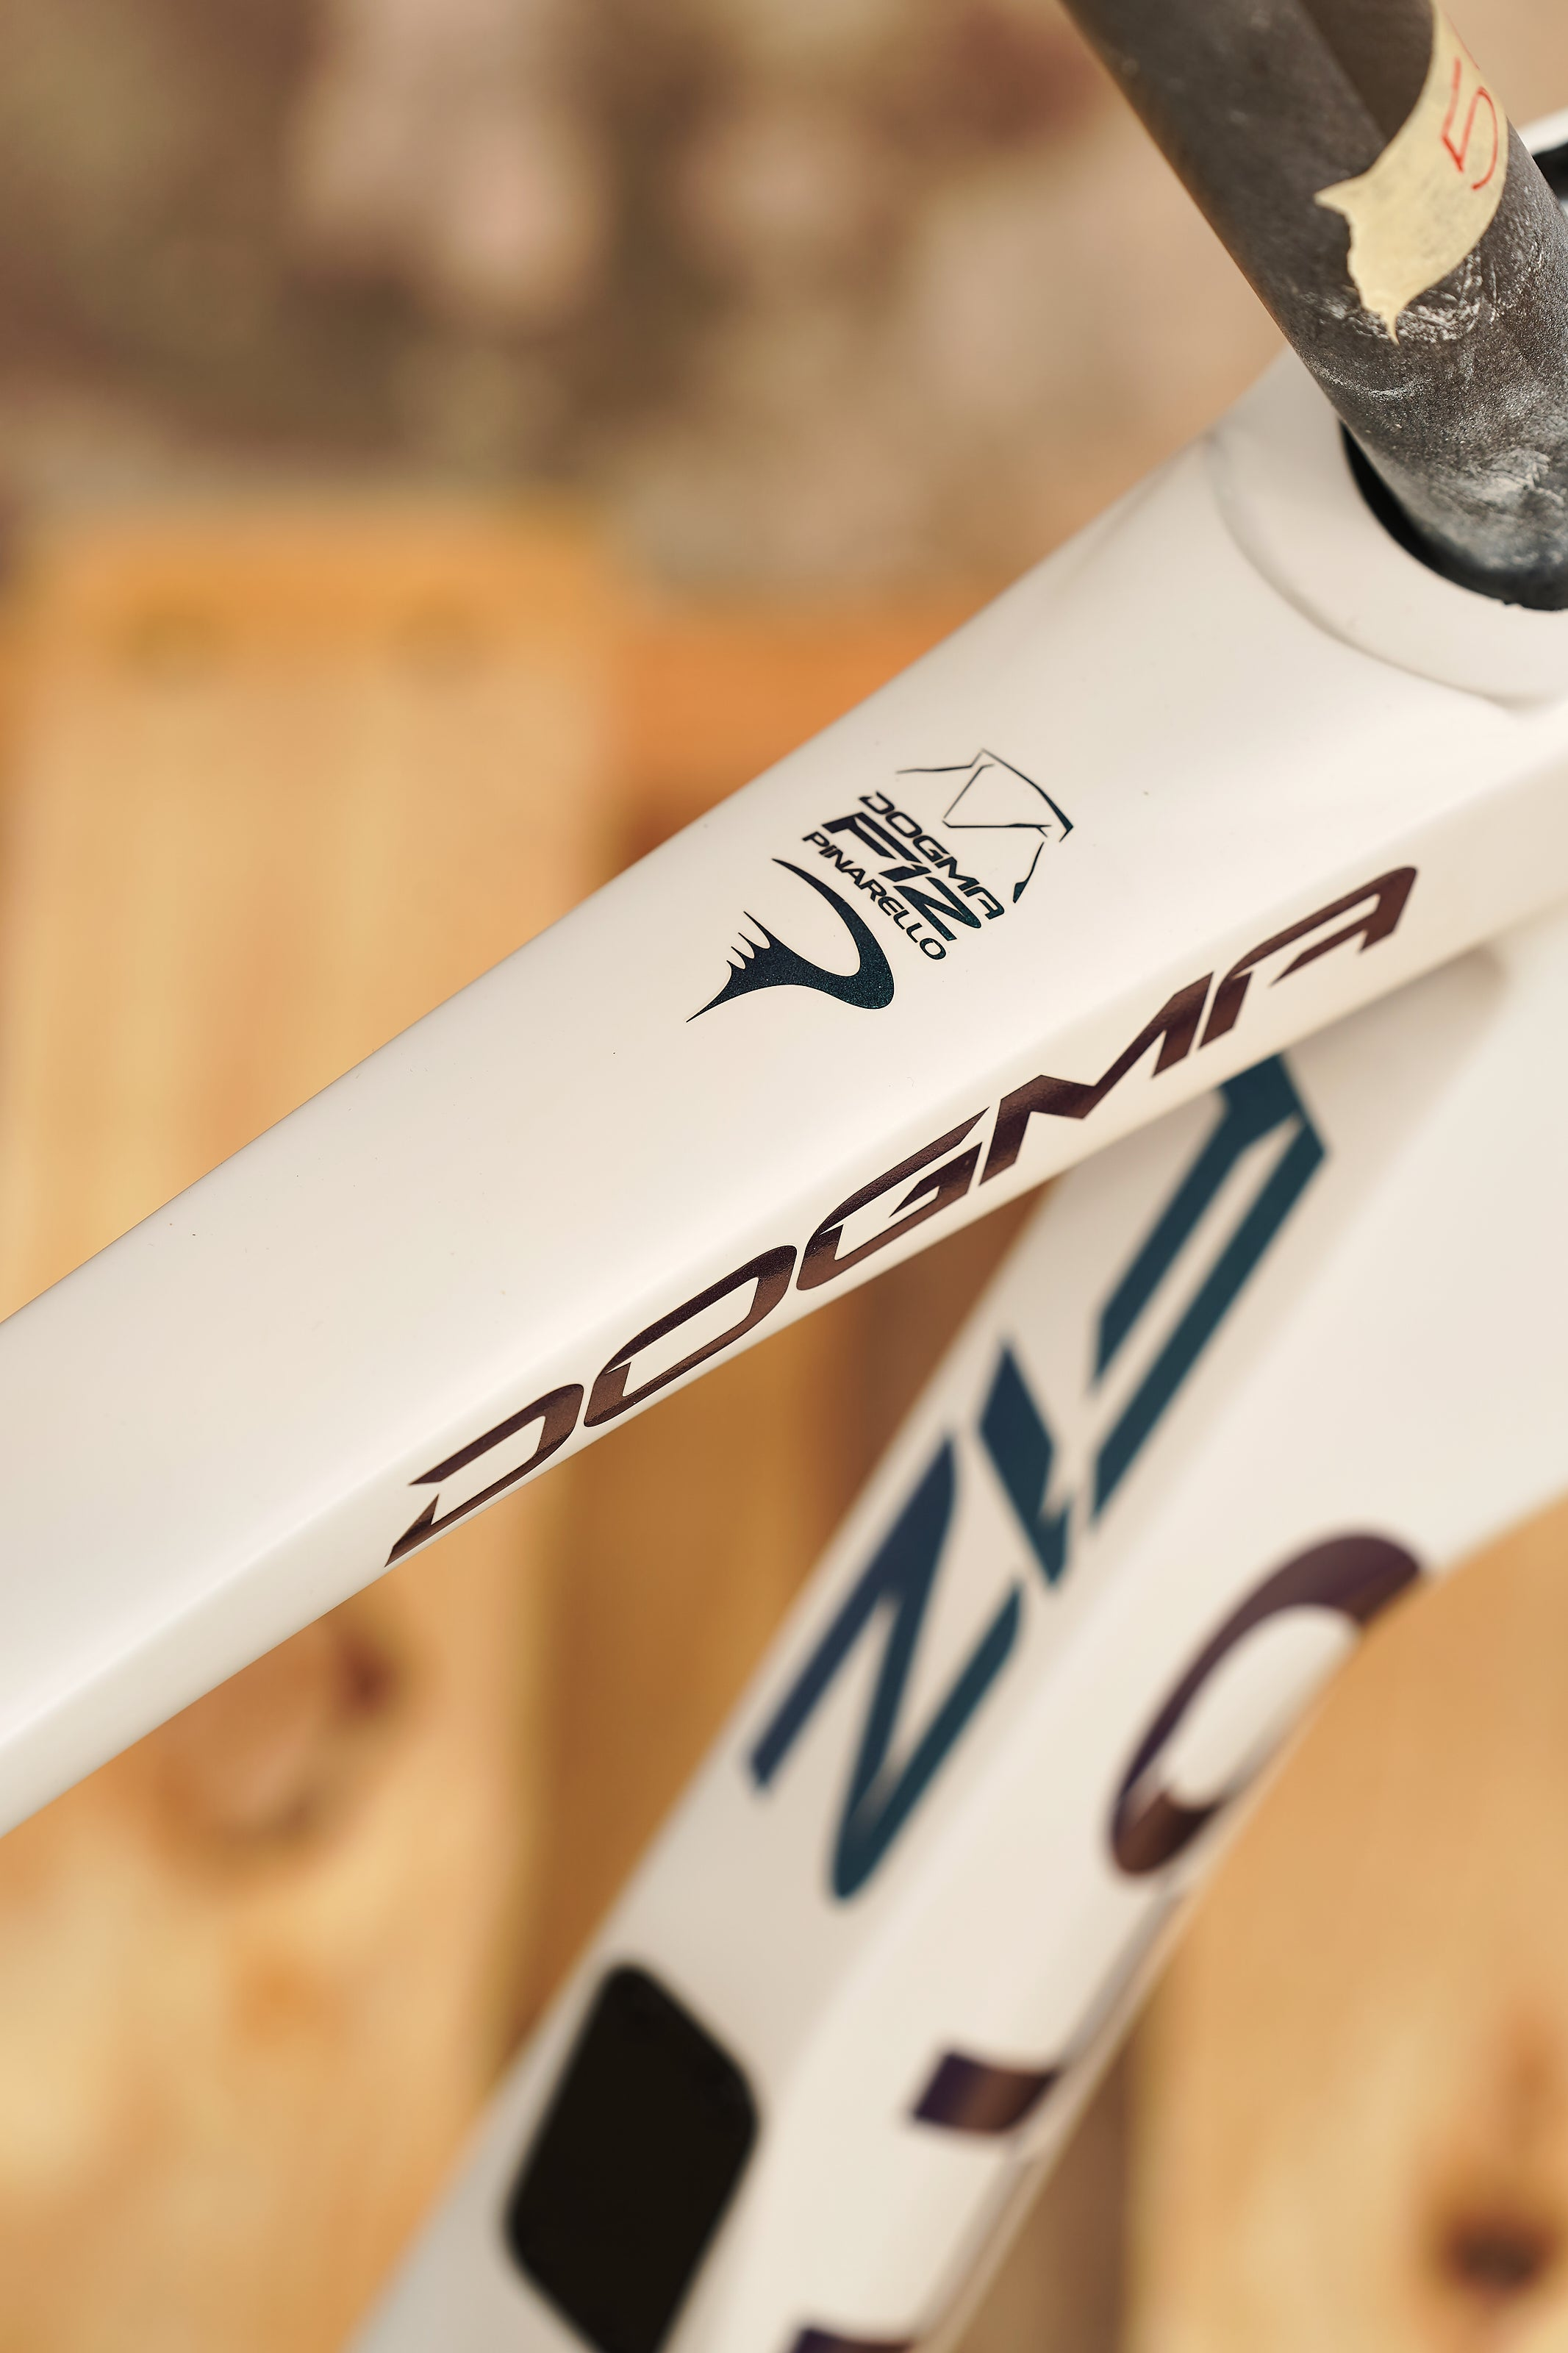 Pinarello Dogma F12 Sideral Grey - Fourth of July Contender Bicycles